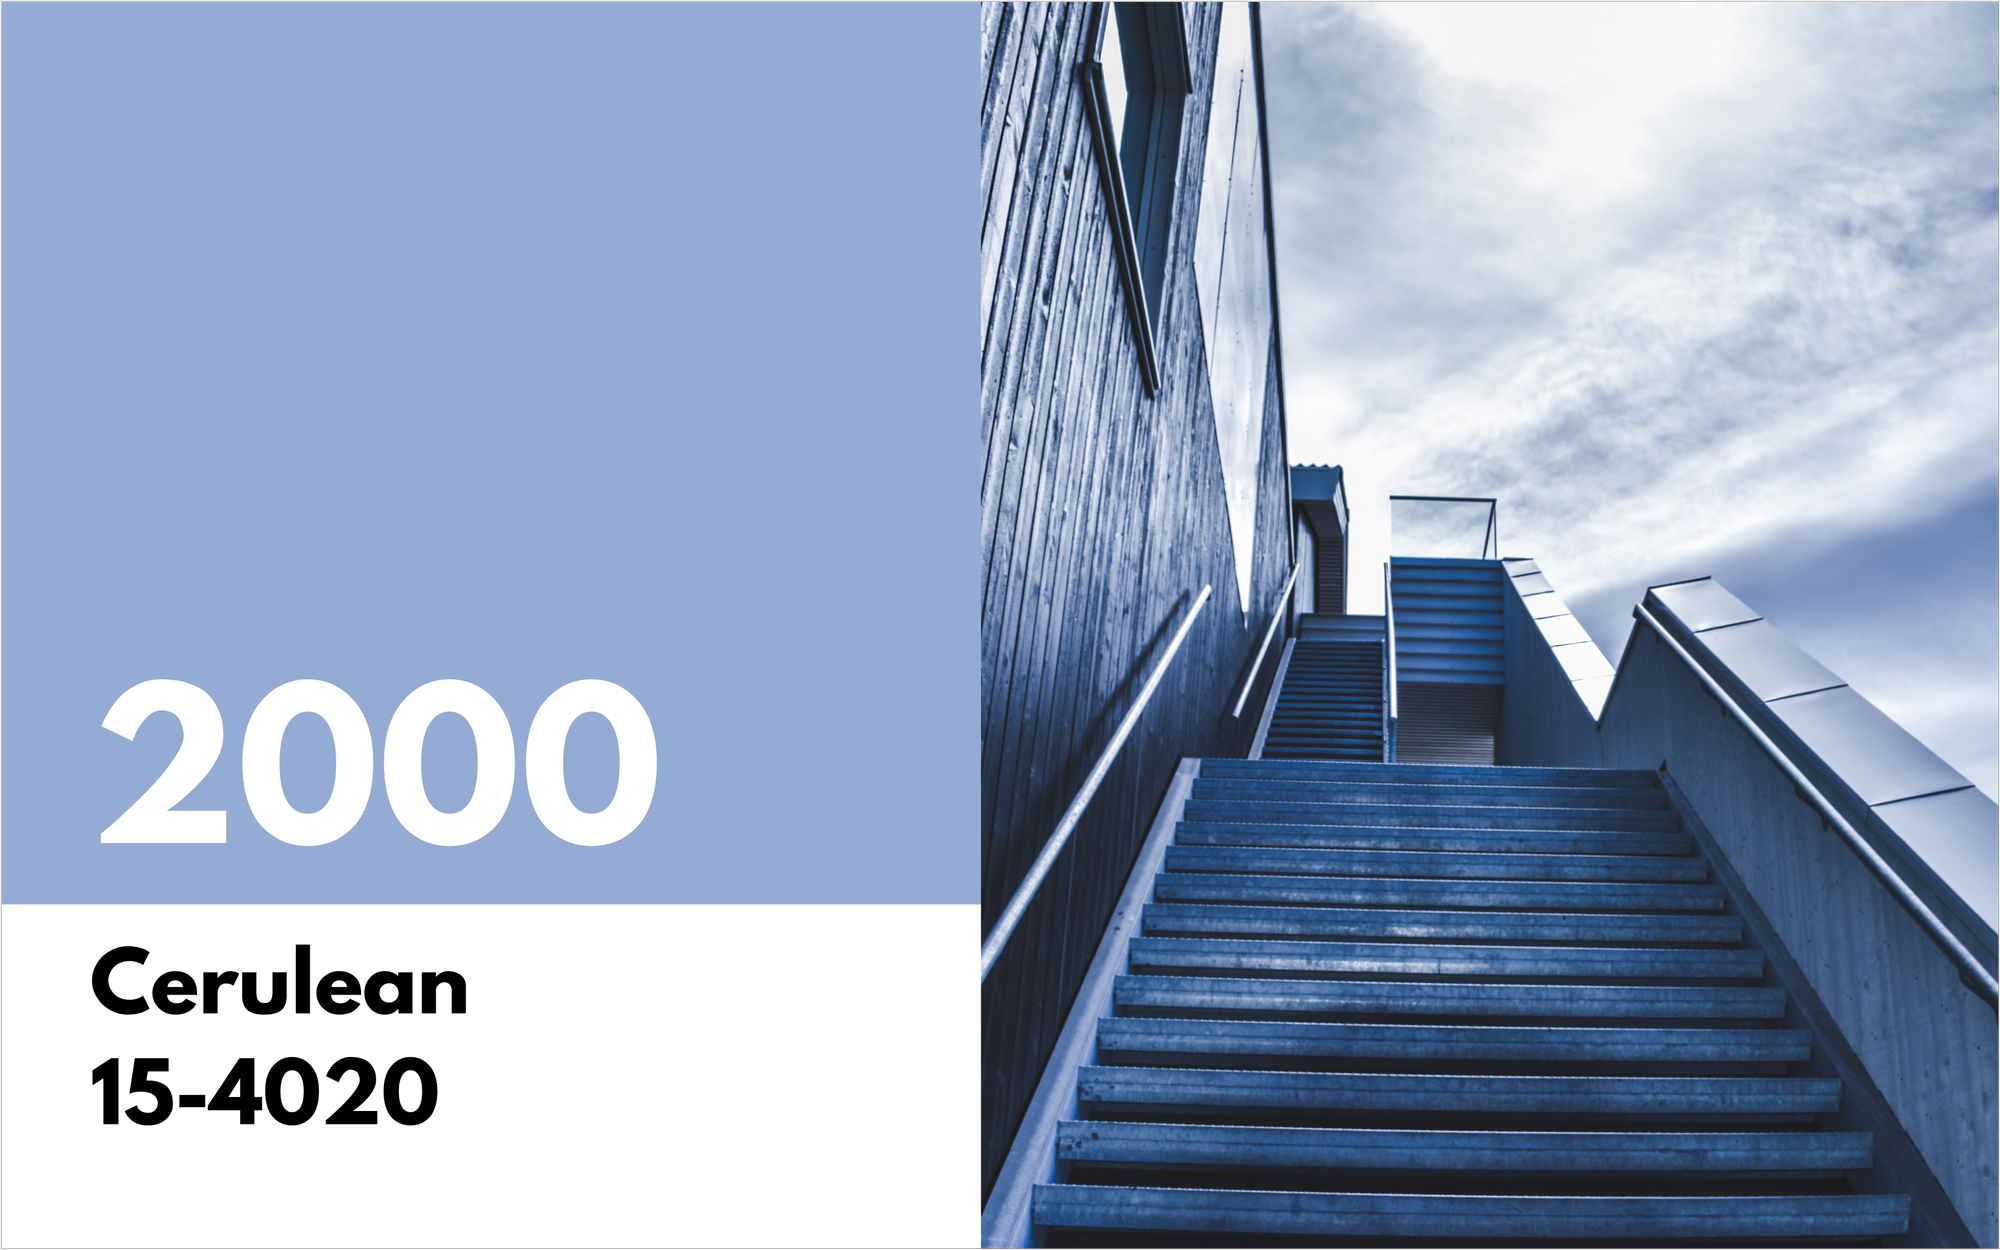 pantone color of the year 2000 cerulean